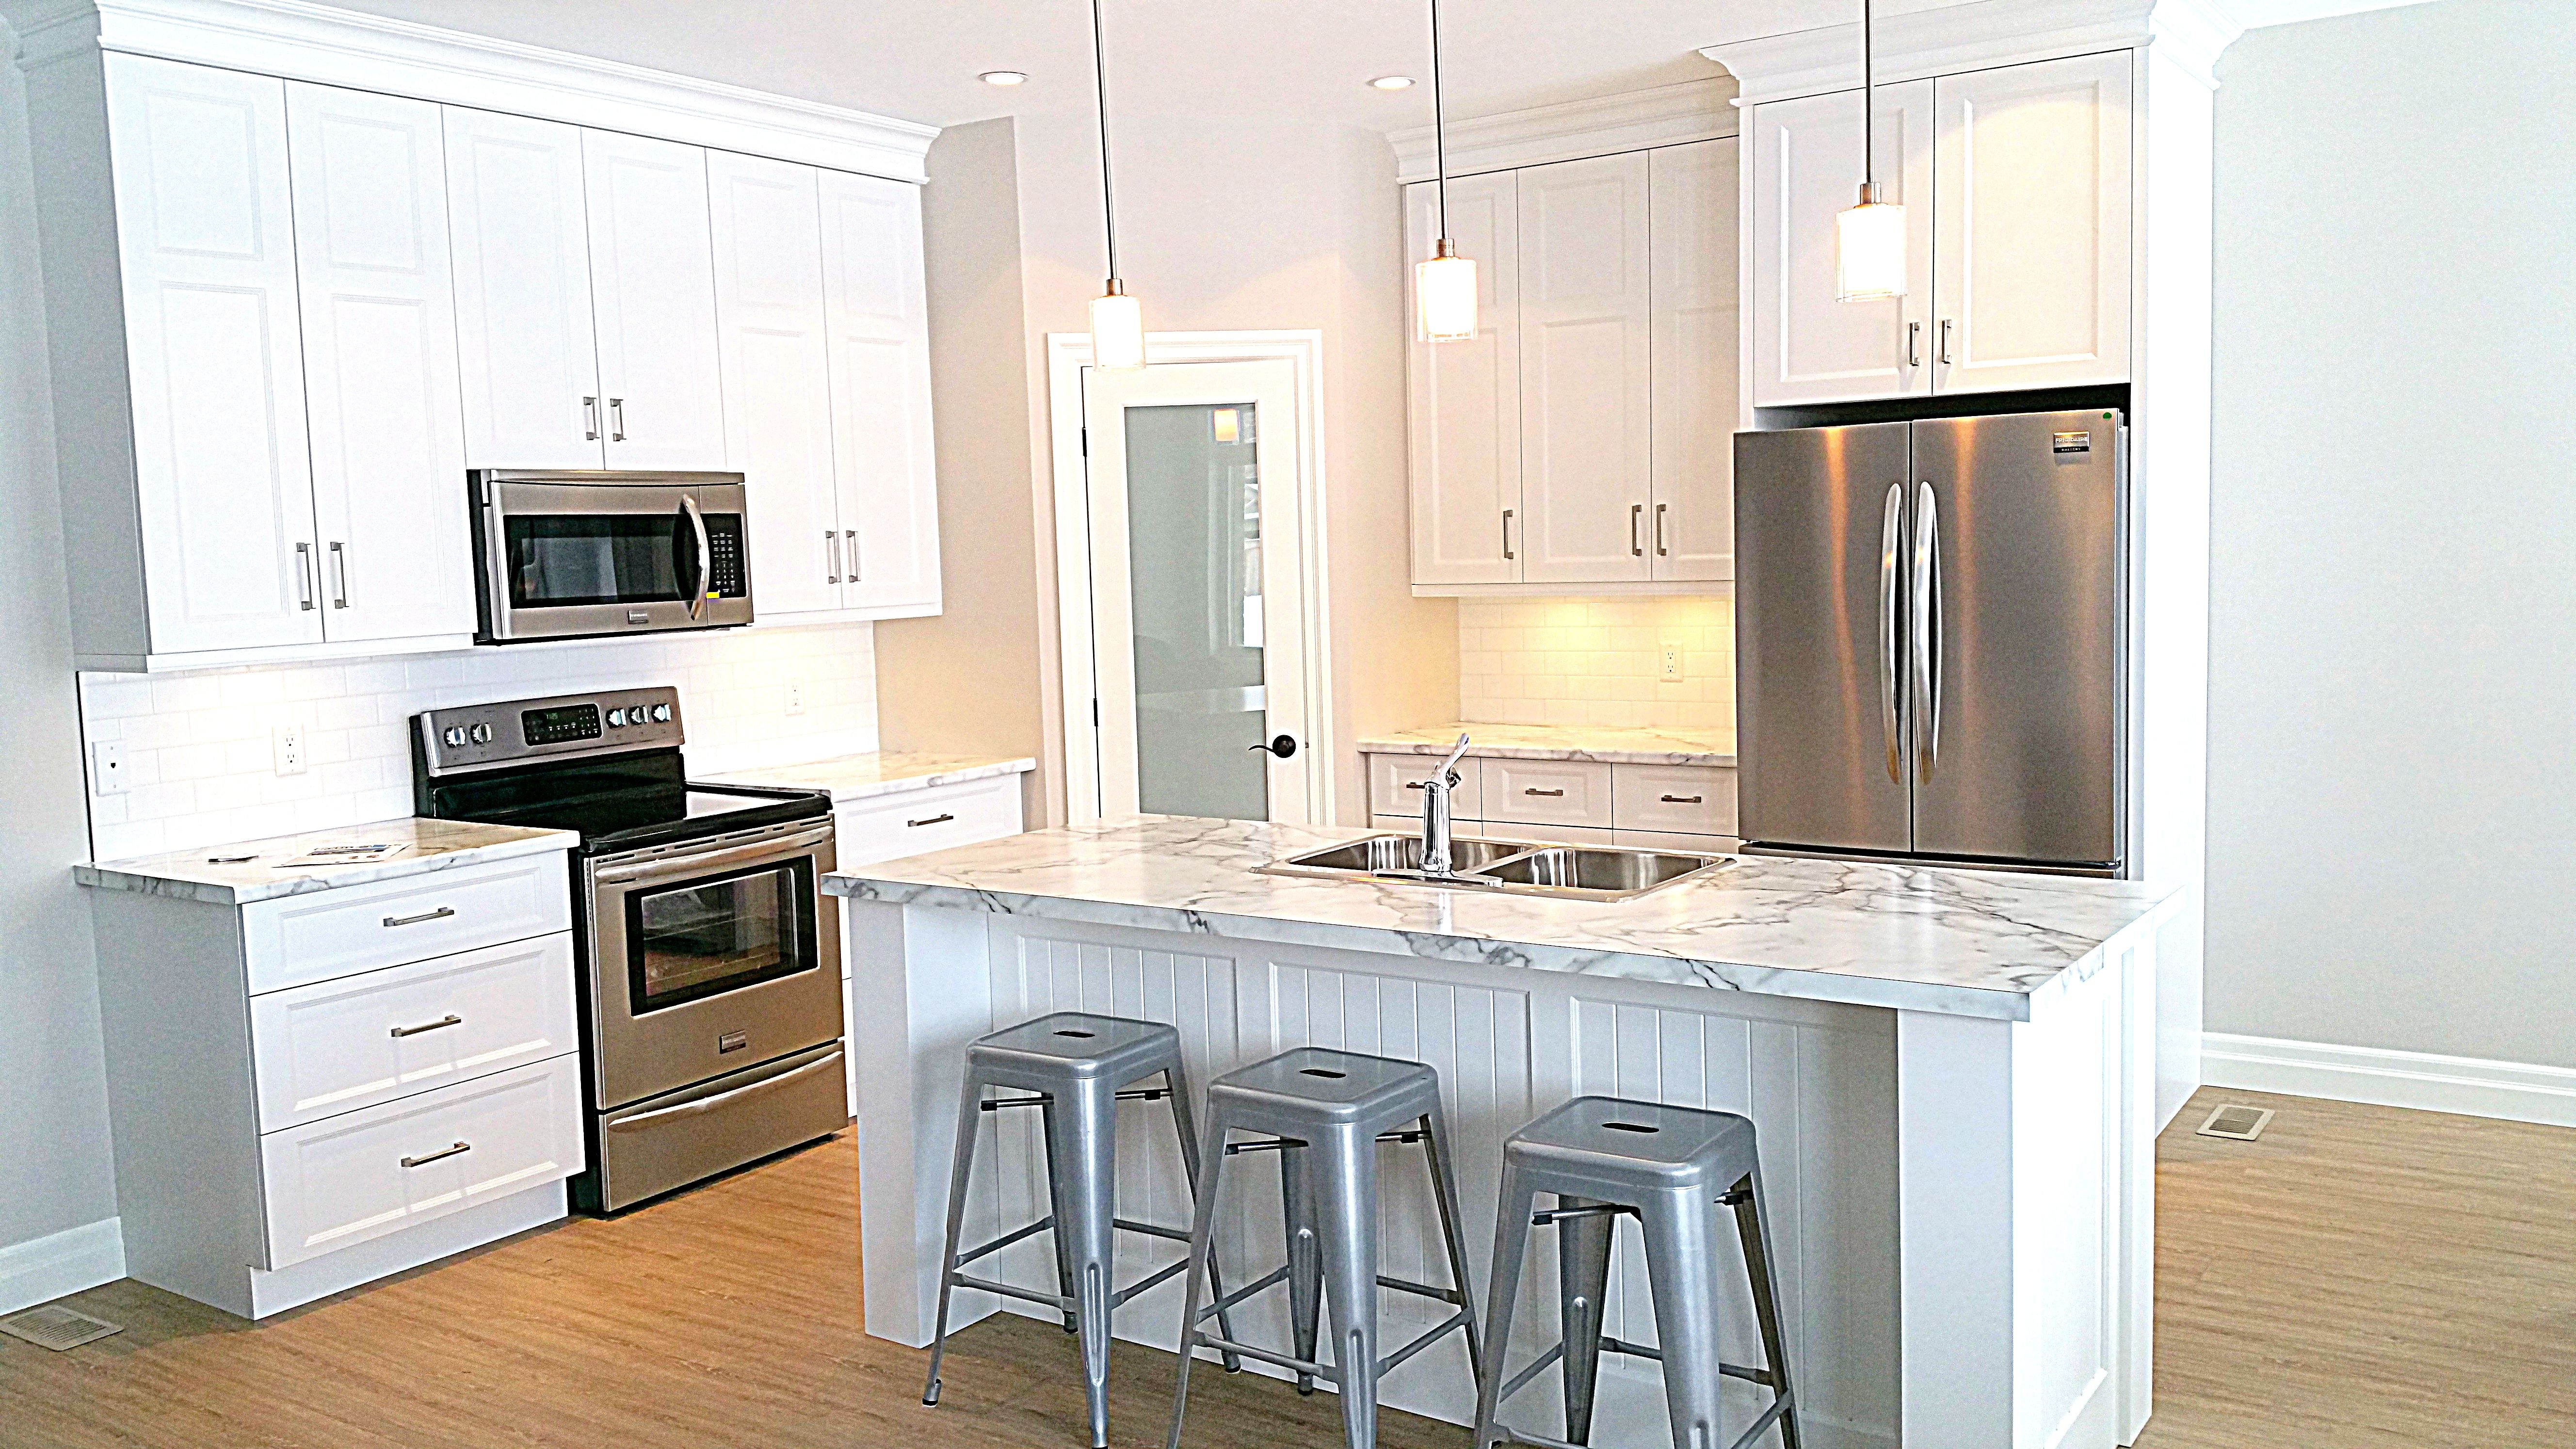 Clean bright airy kitchen formica x countertop with white